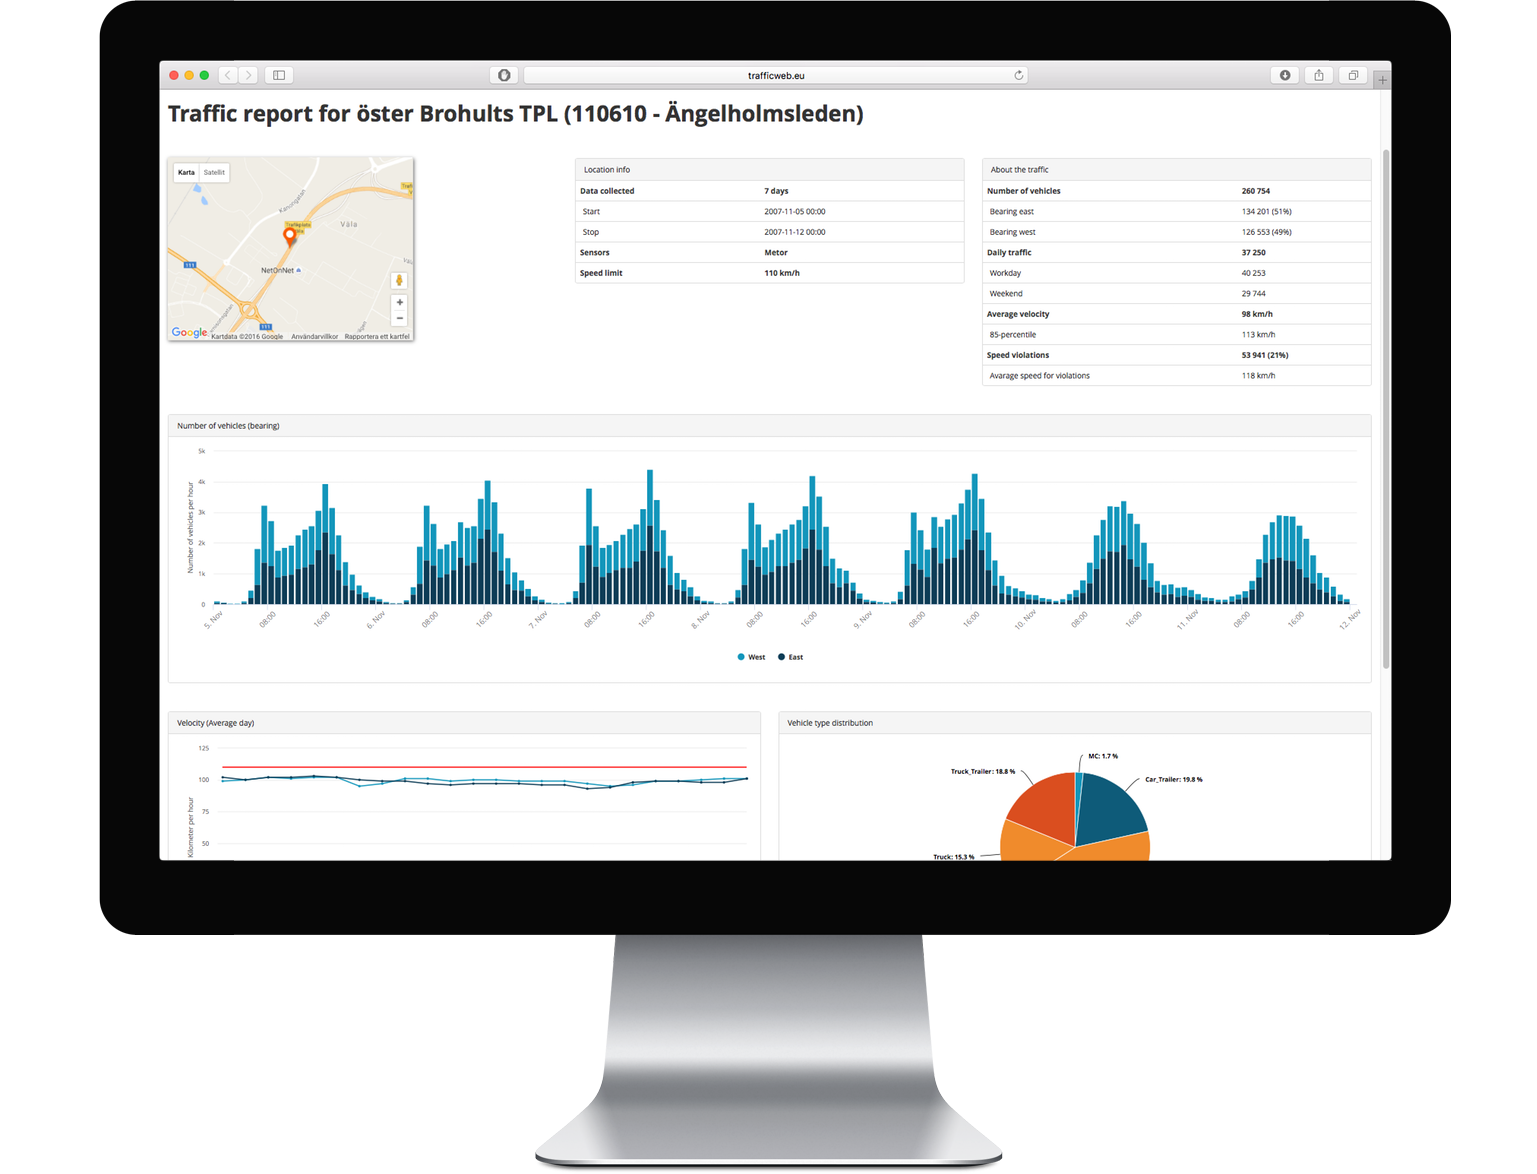 Web based analytics tool for traffic data